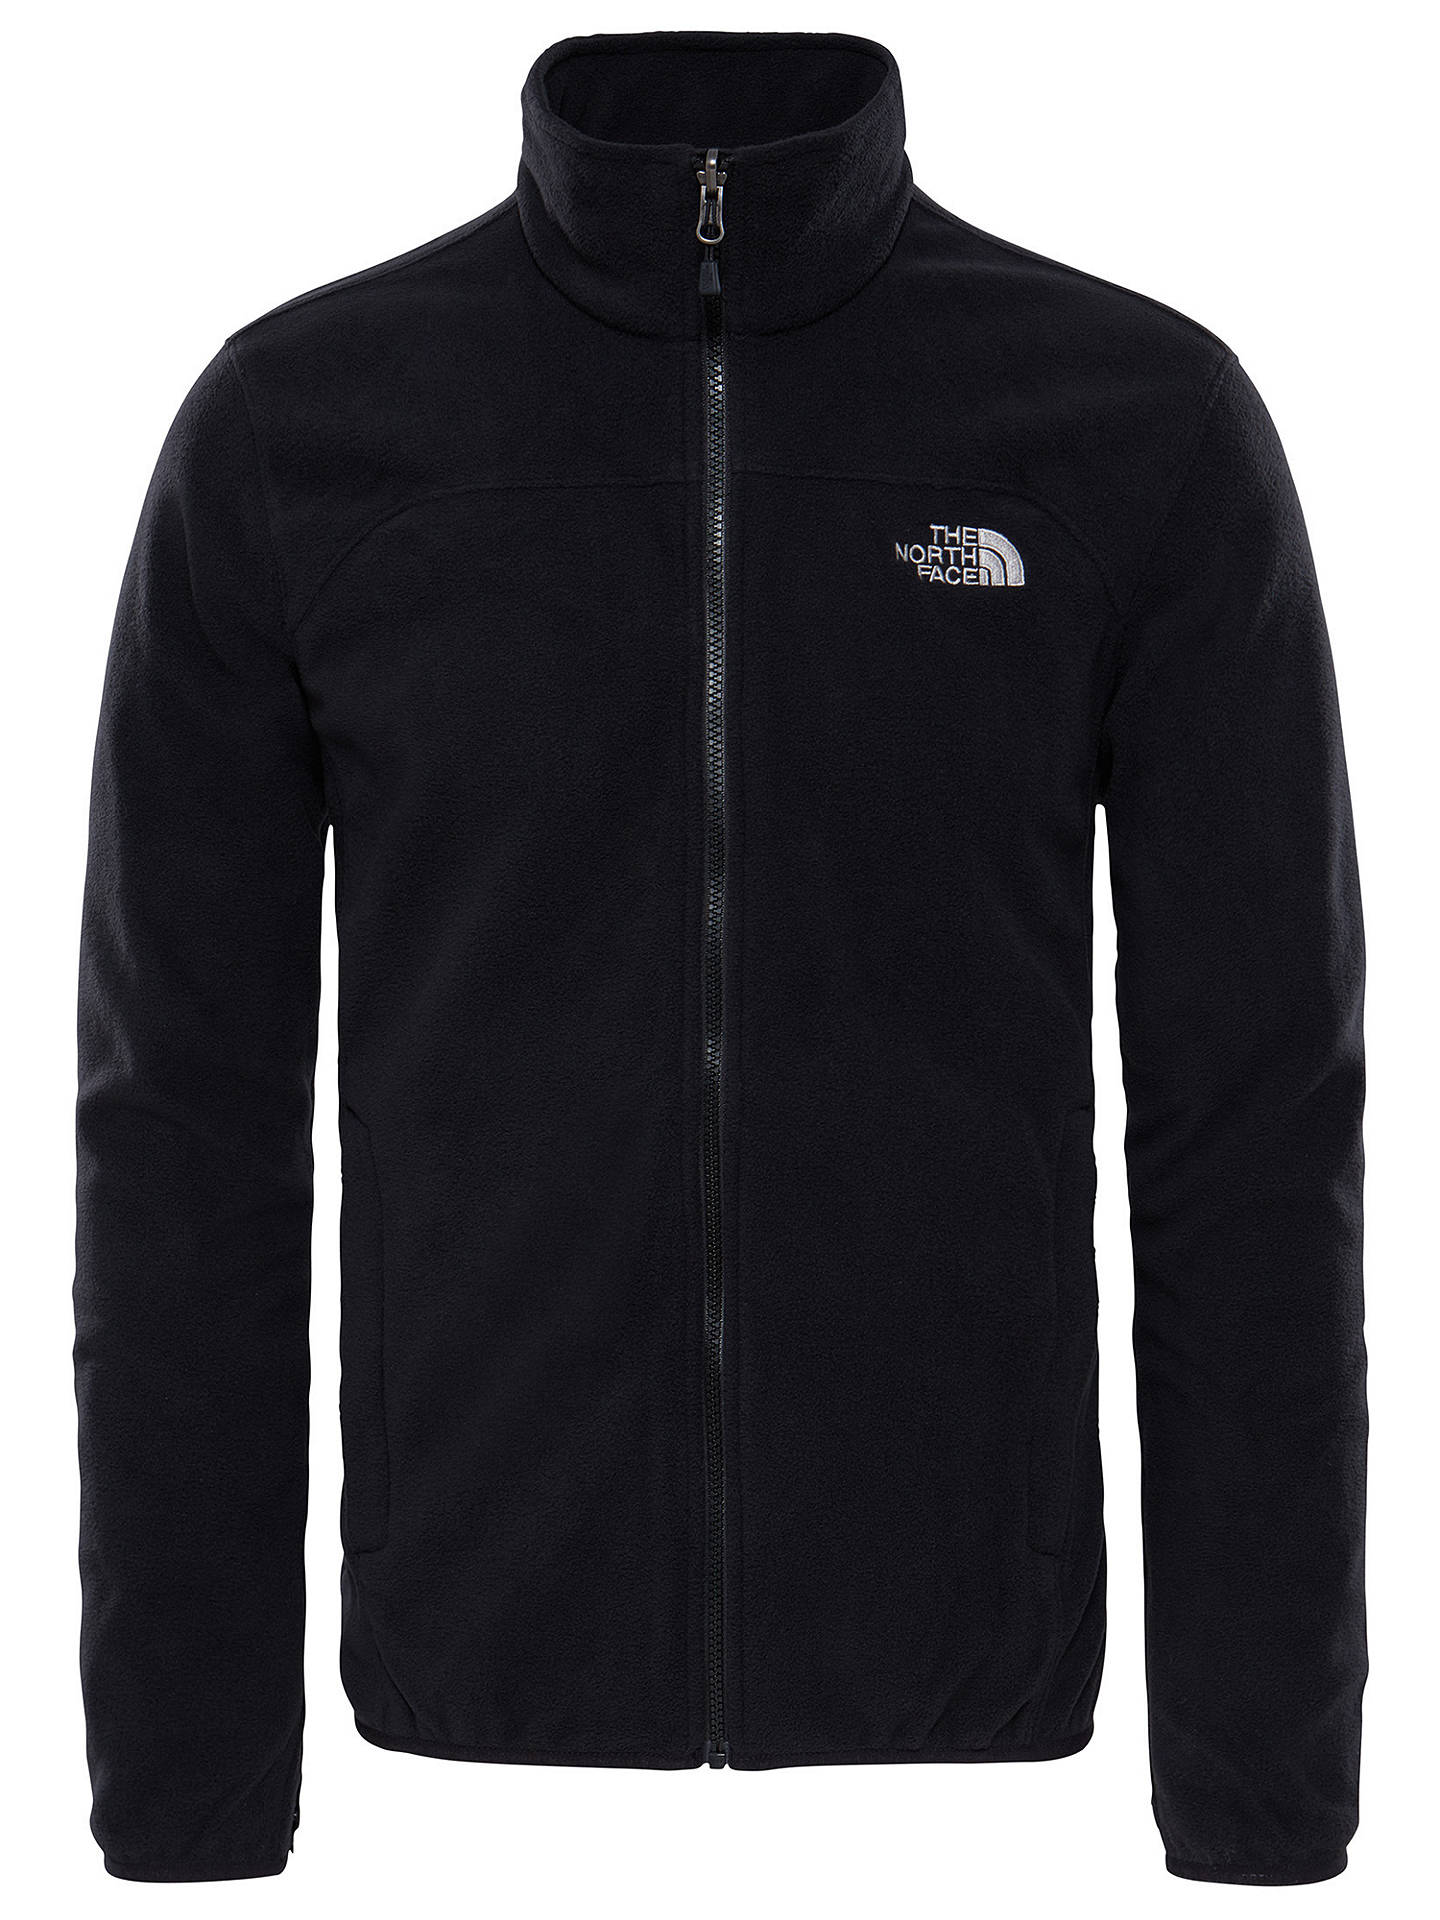 BuyThe North Face Evolve II Triclimate 3-in-1 Waterproof Men's Jacket, Black, S Online at johnlewis.com